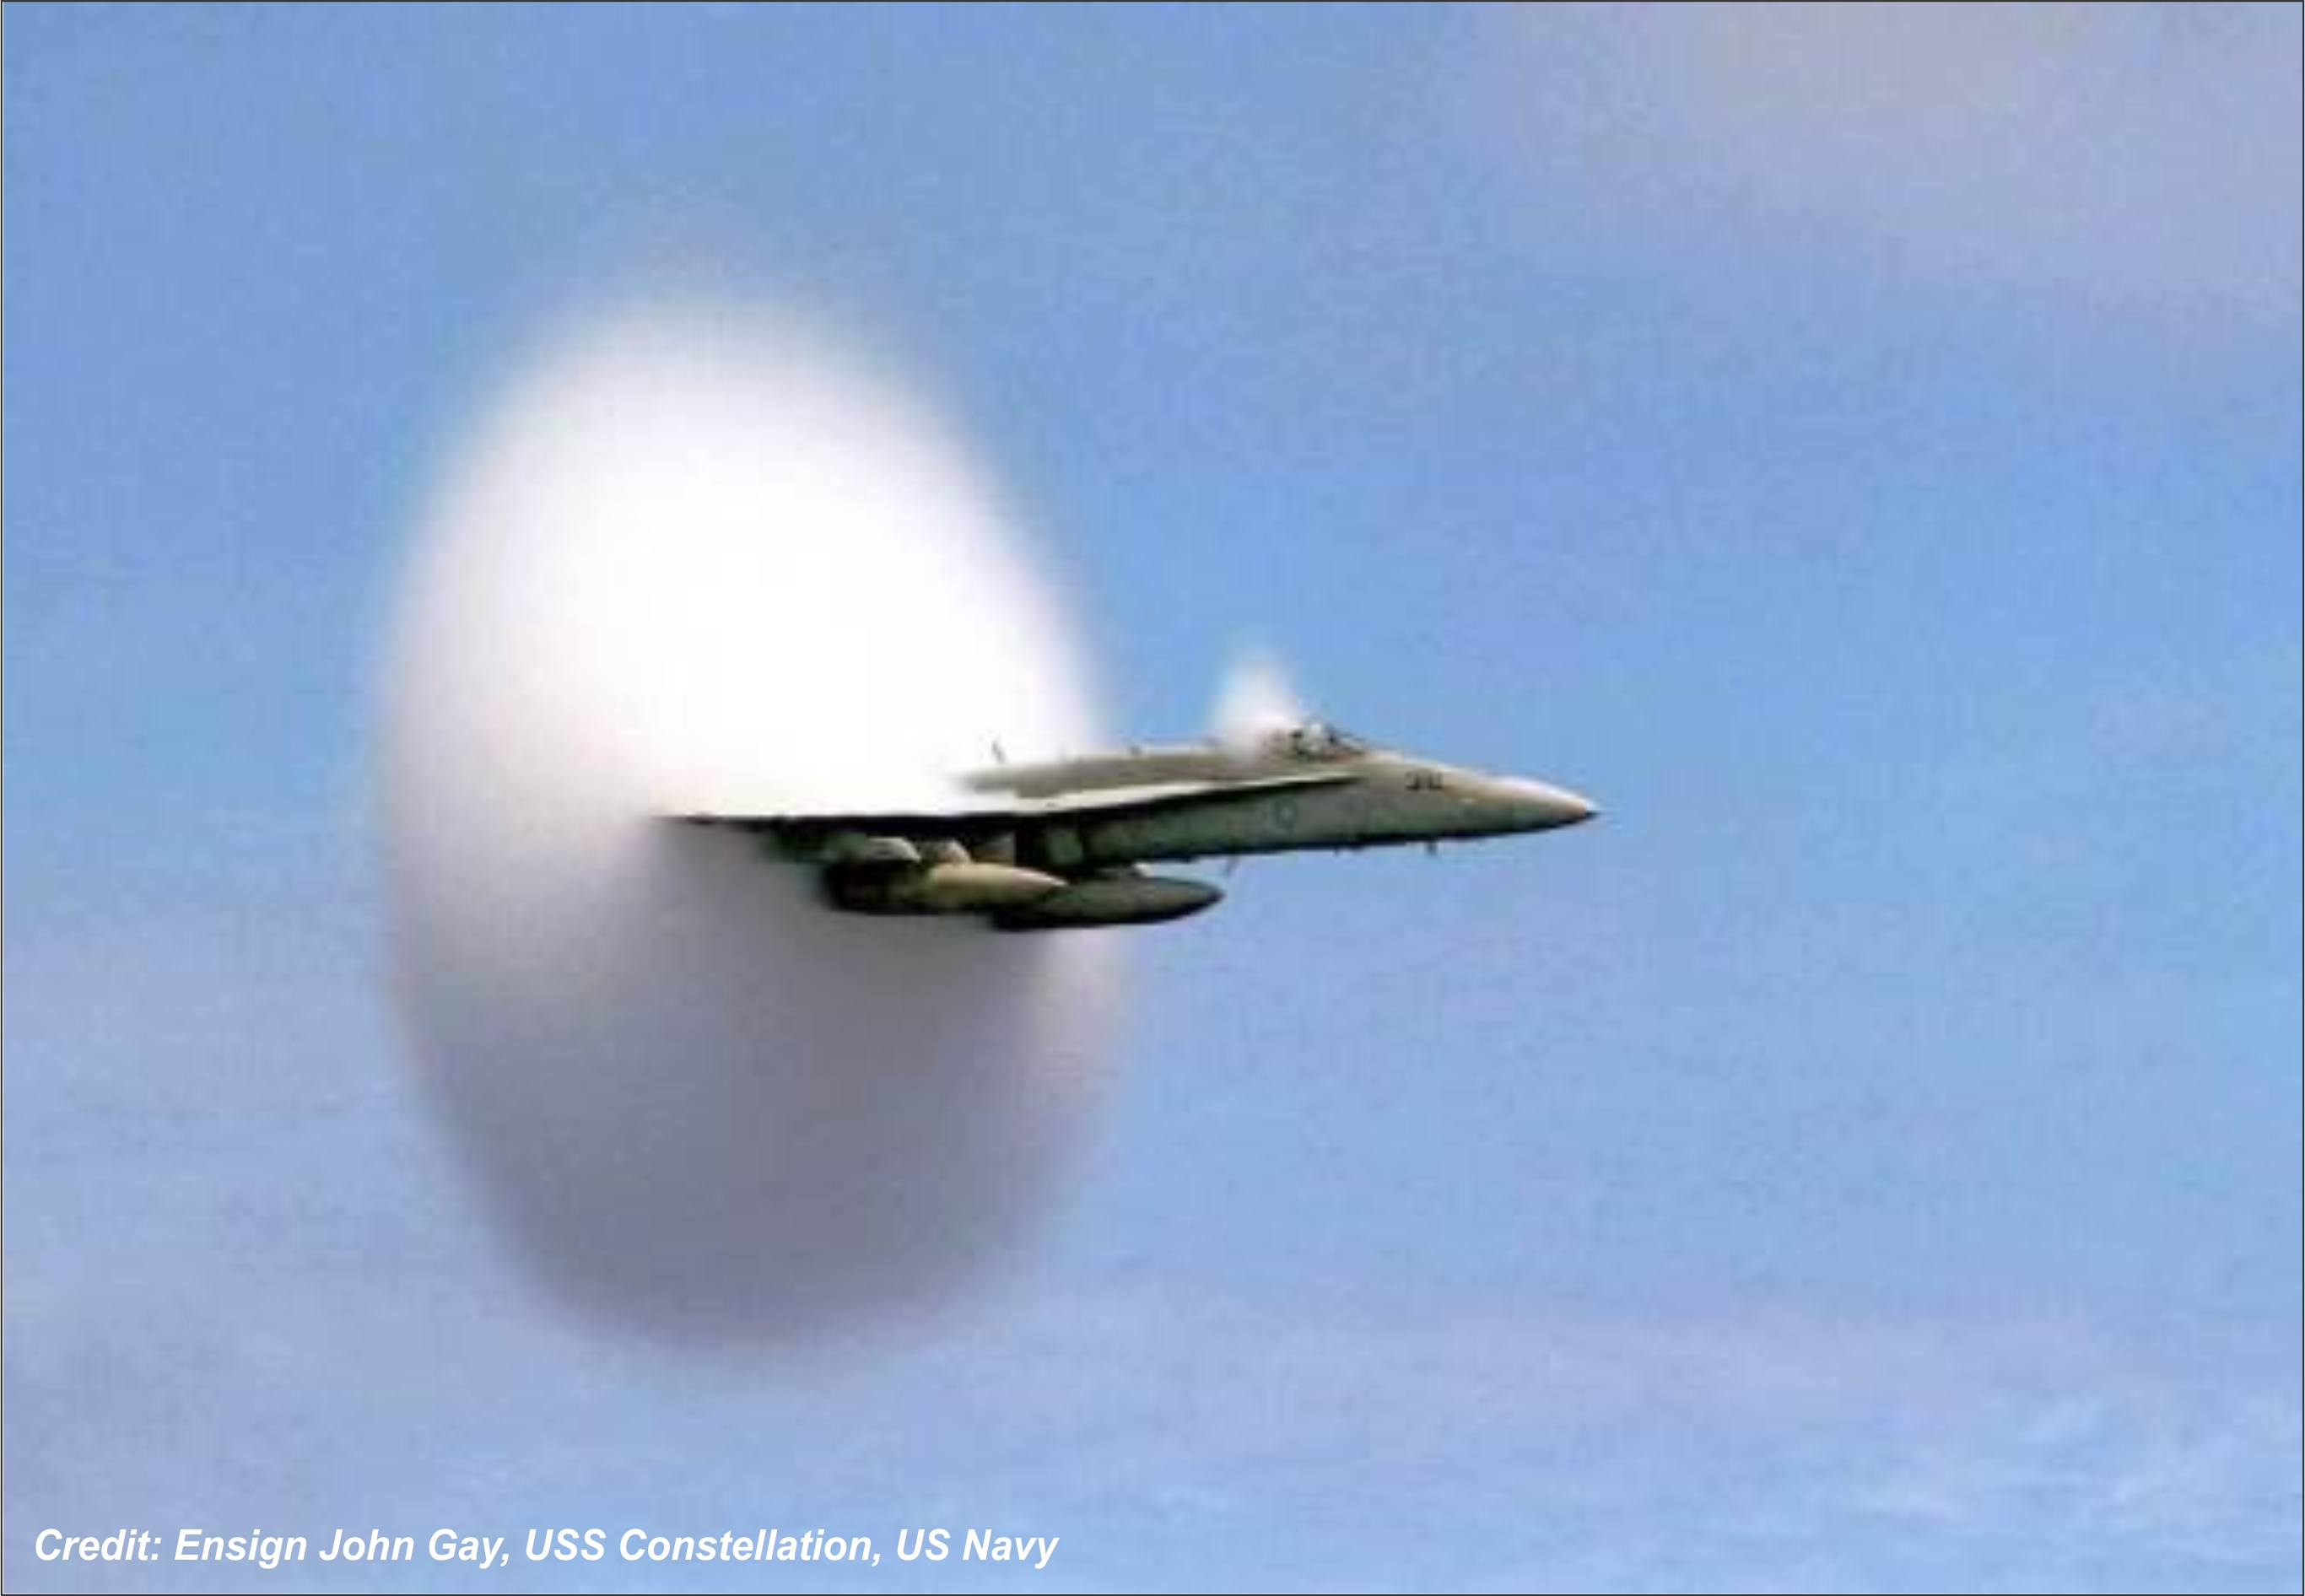 The moment a sonic boom occurs. CLICK FOR A LARGER VERSION.